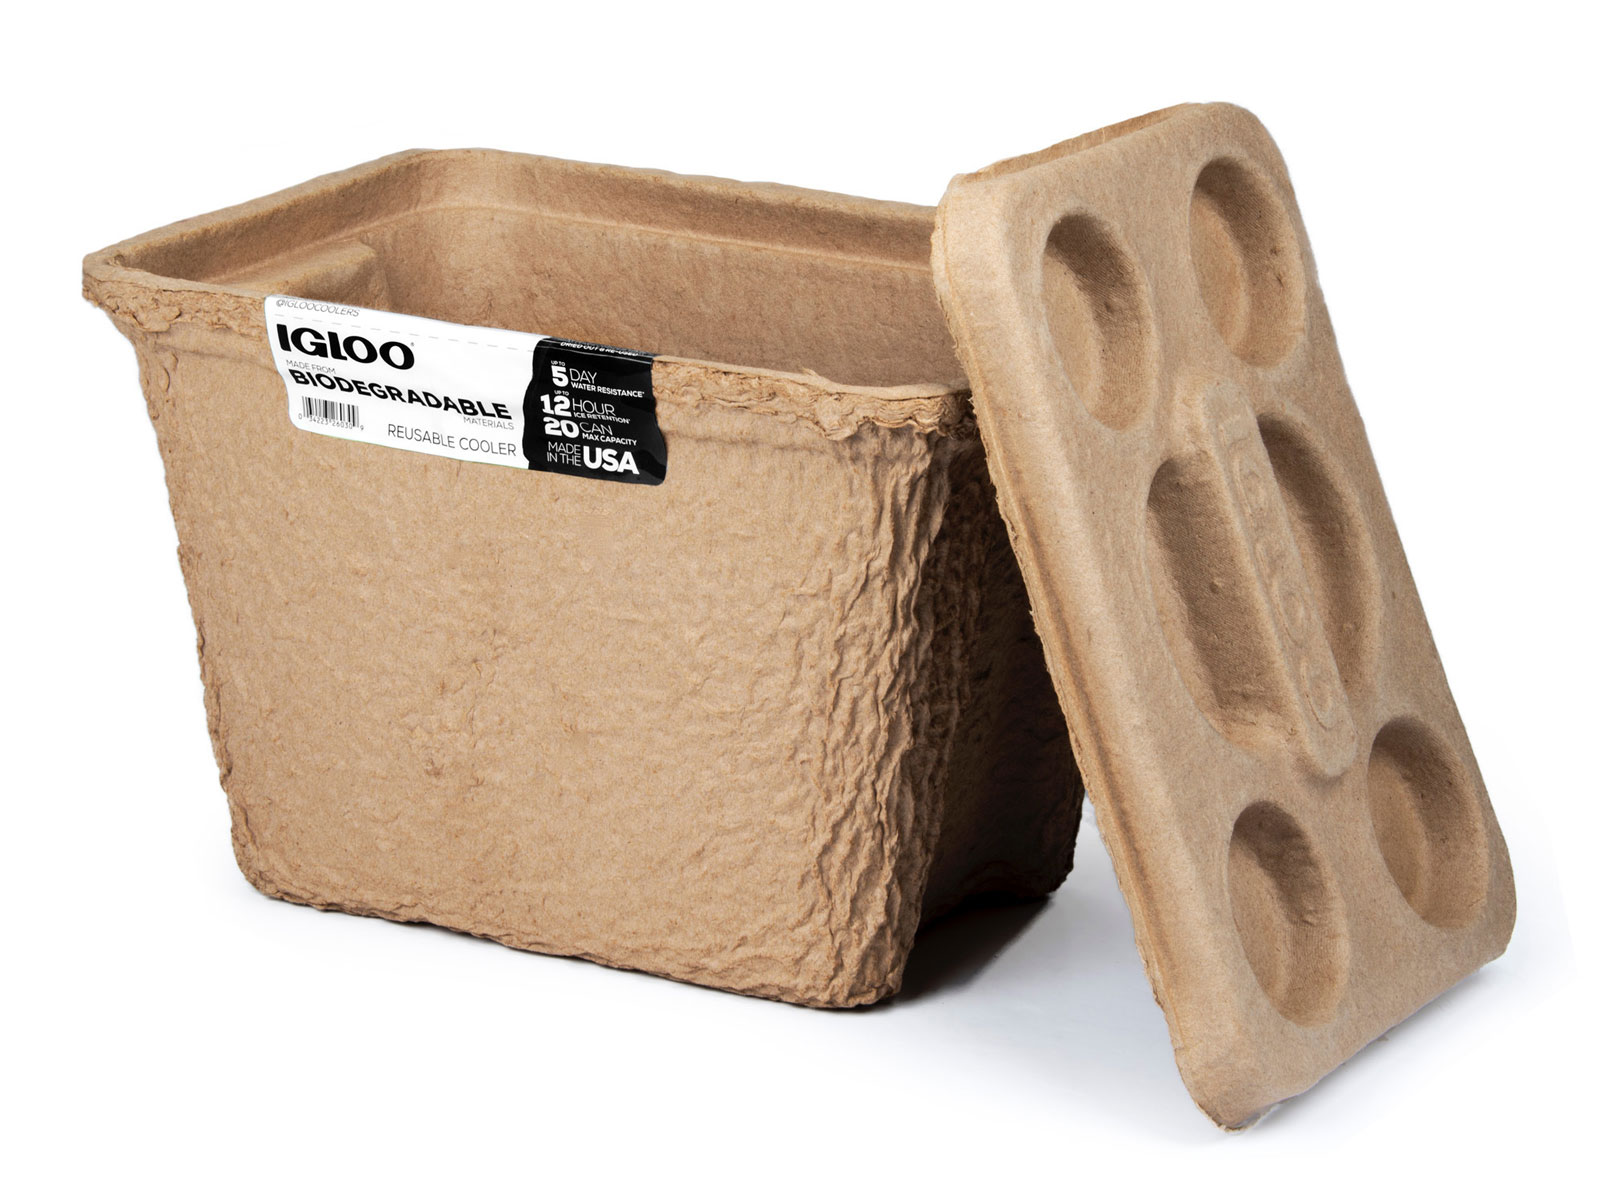 igloo-recool-biodegradable-cooler-FT-BLOG0419.jpg